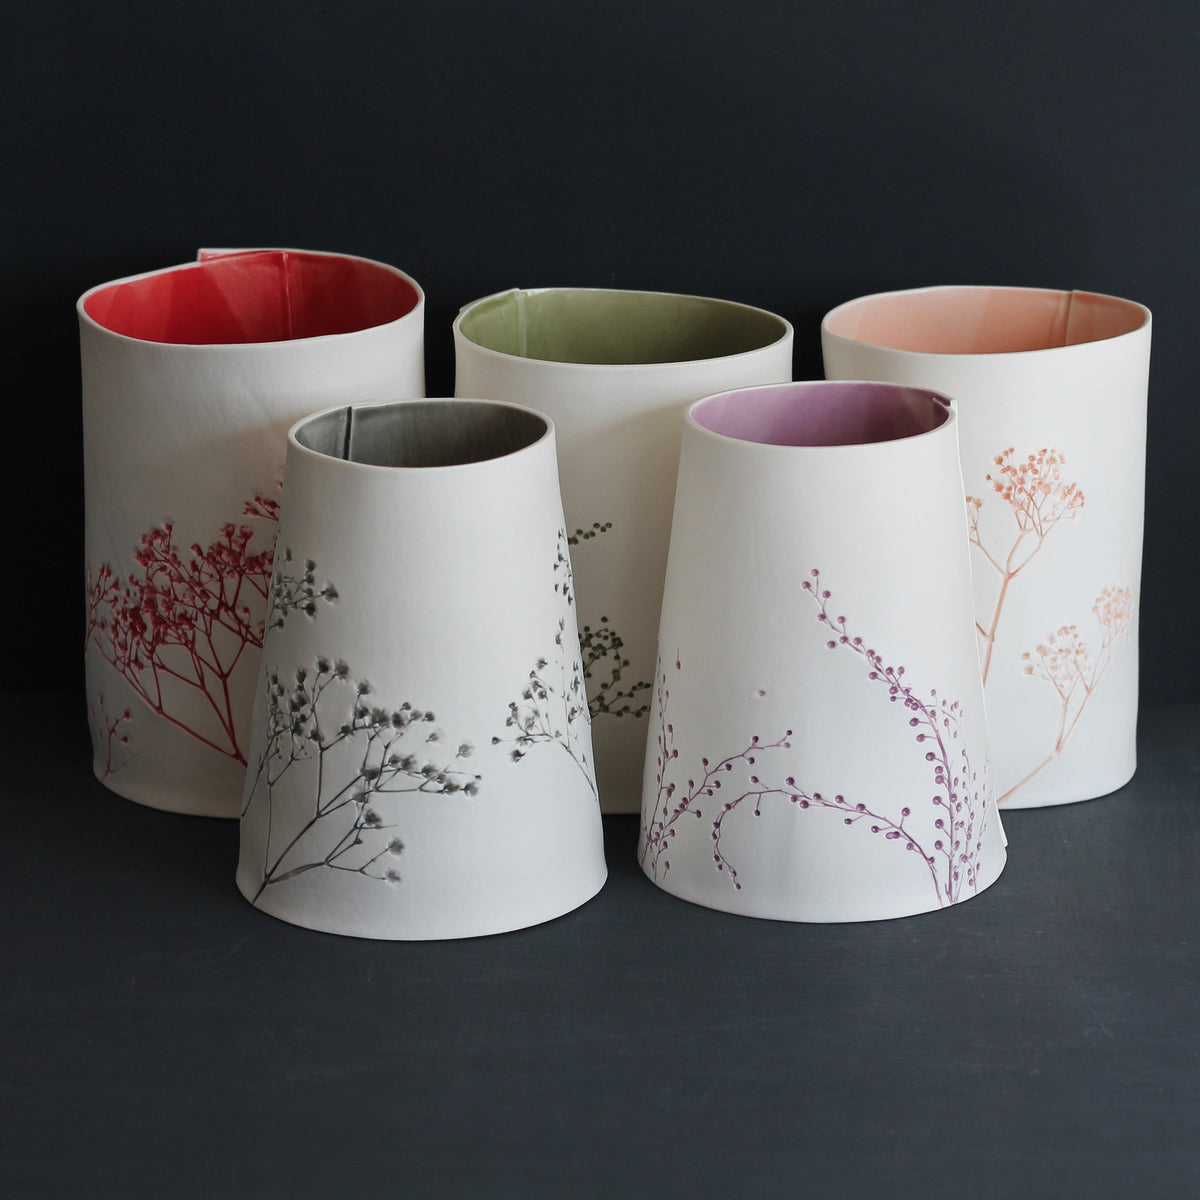 Porcelain Handmade Botanical Imprint Vases Collection Colour Glazed on Ceramics